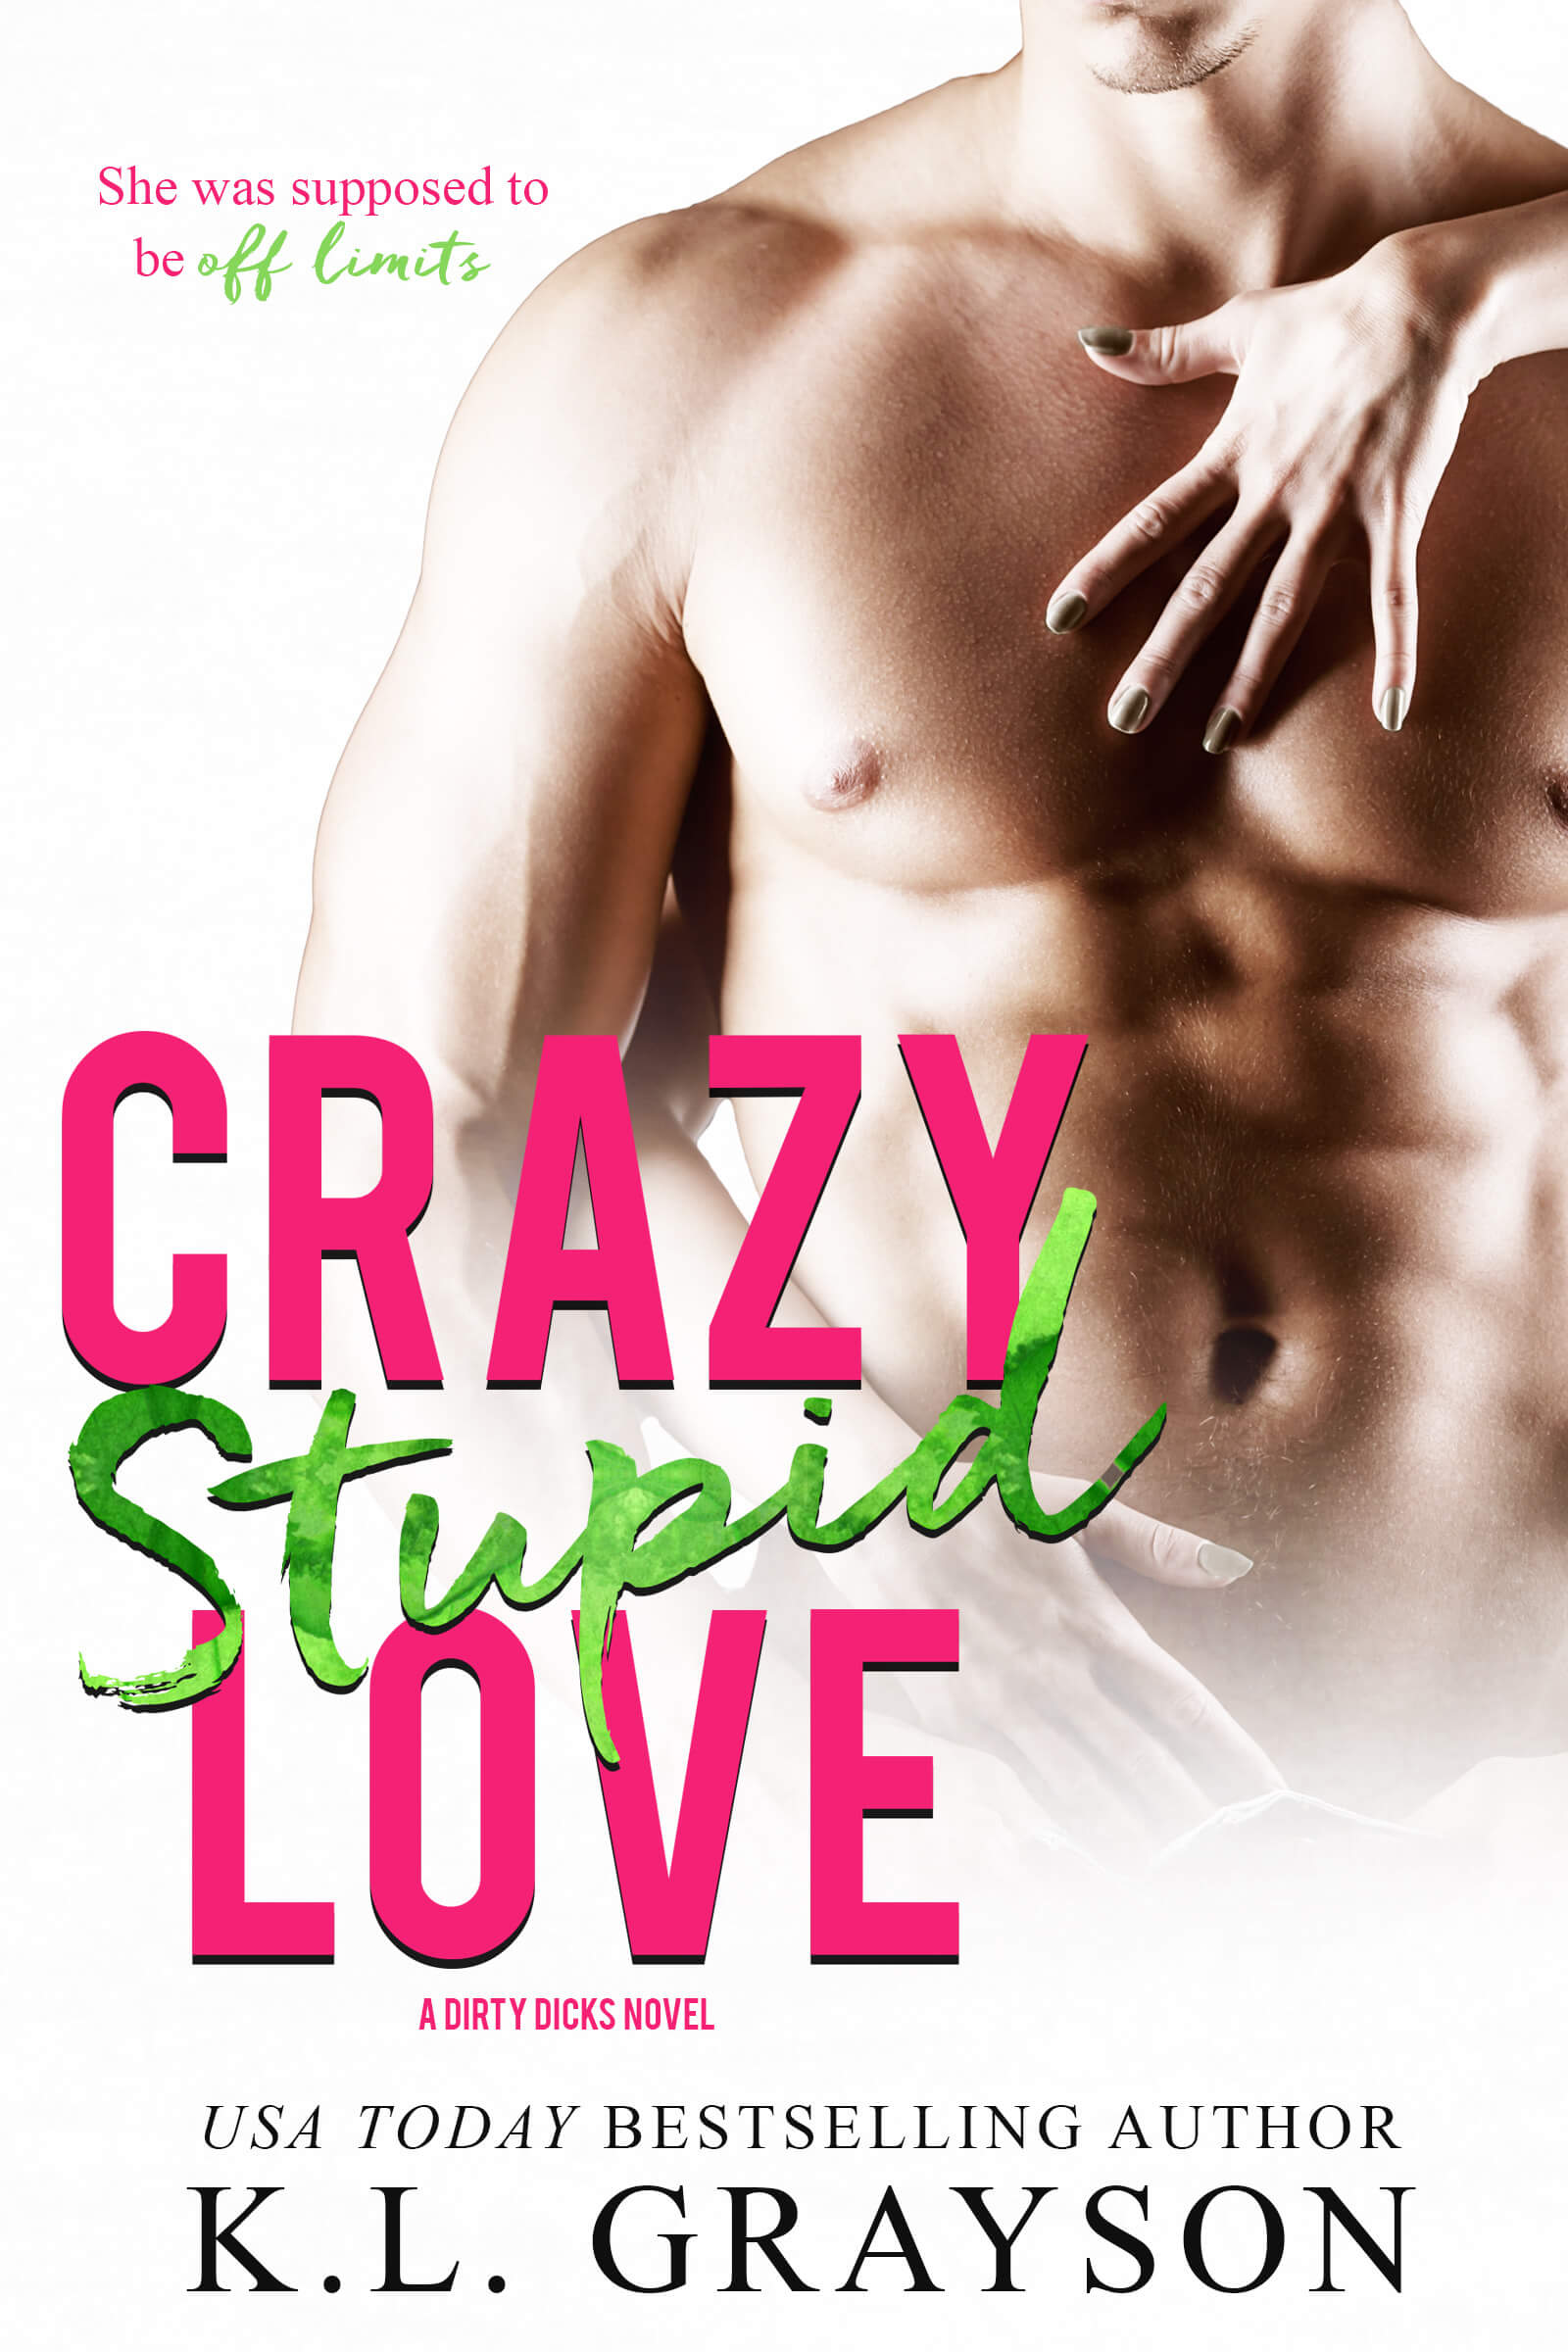 Crazy Stupid Love by KL Grayson